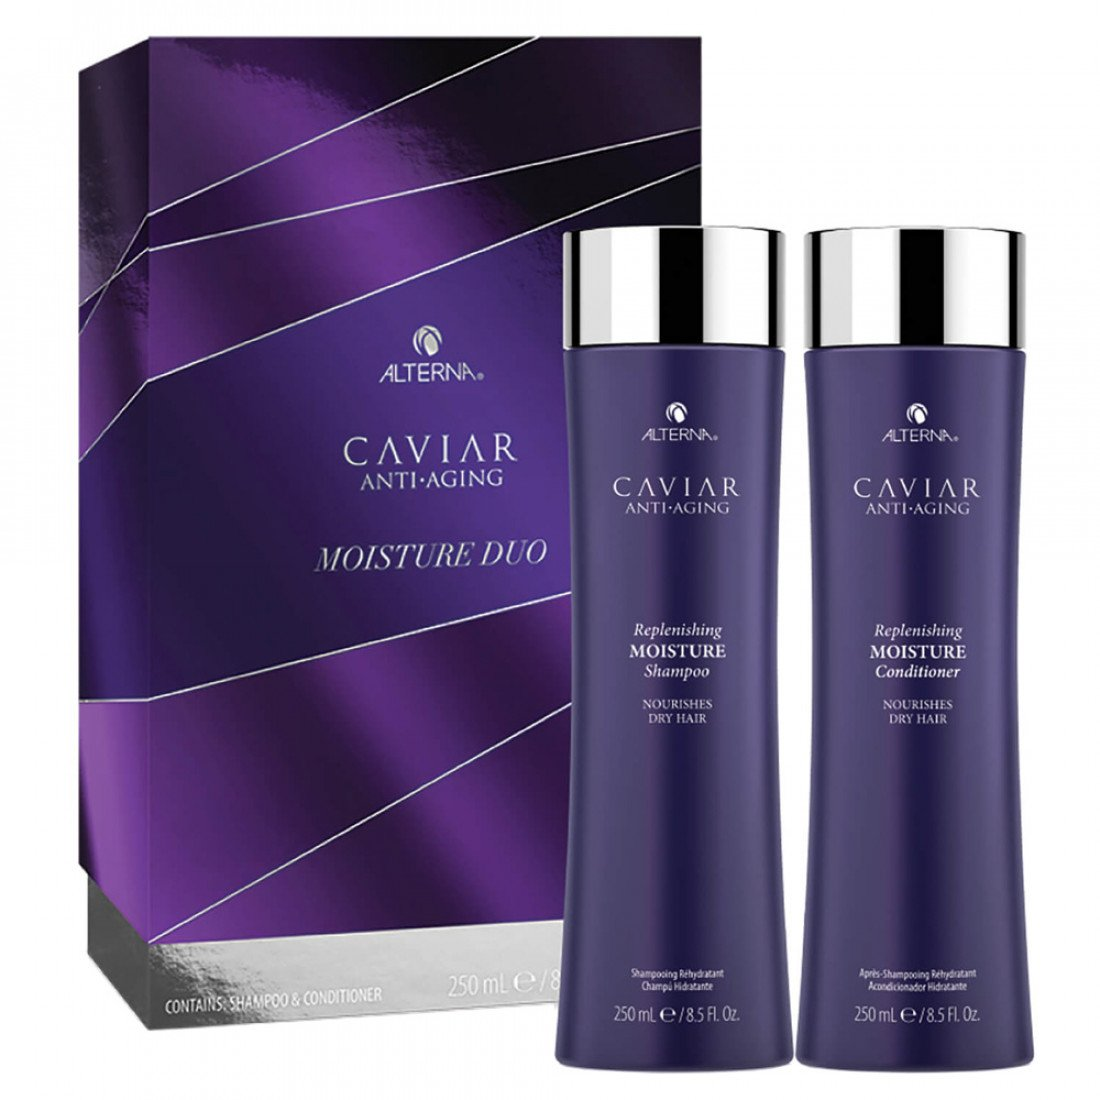 Alterna Caviar Replenishing Moisture Duo - Šampón 250 ml + kondicioner 250 ml